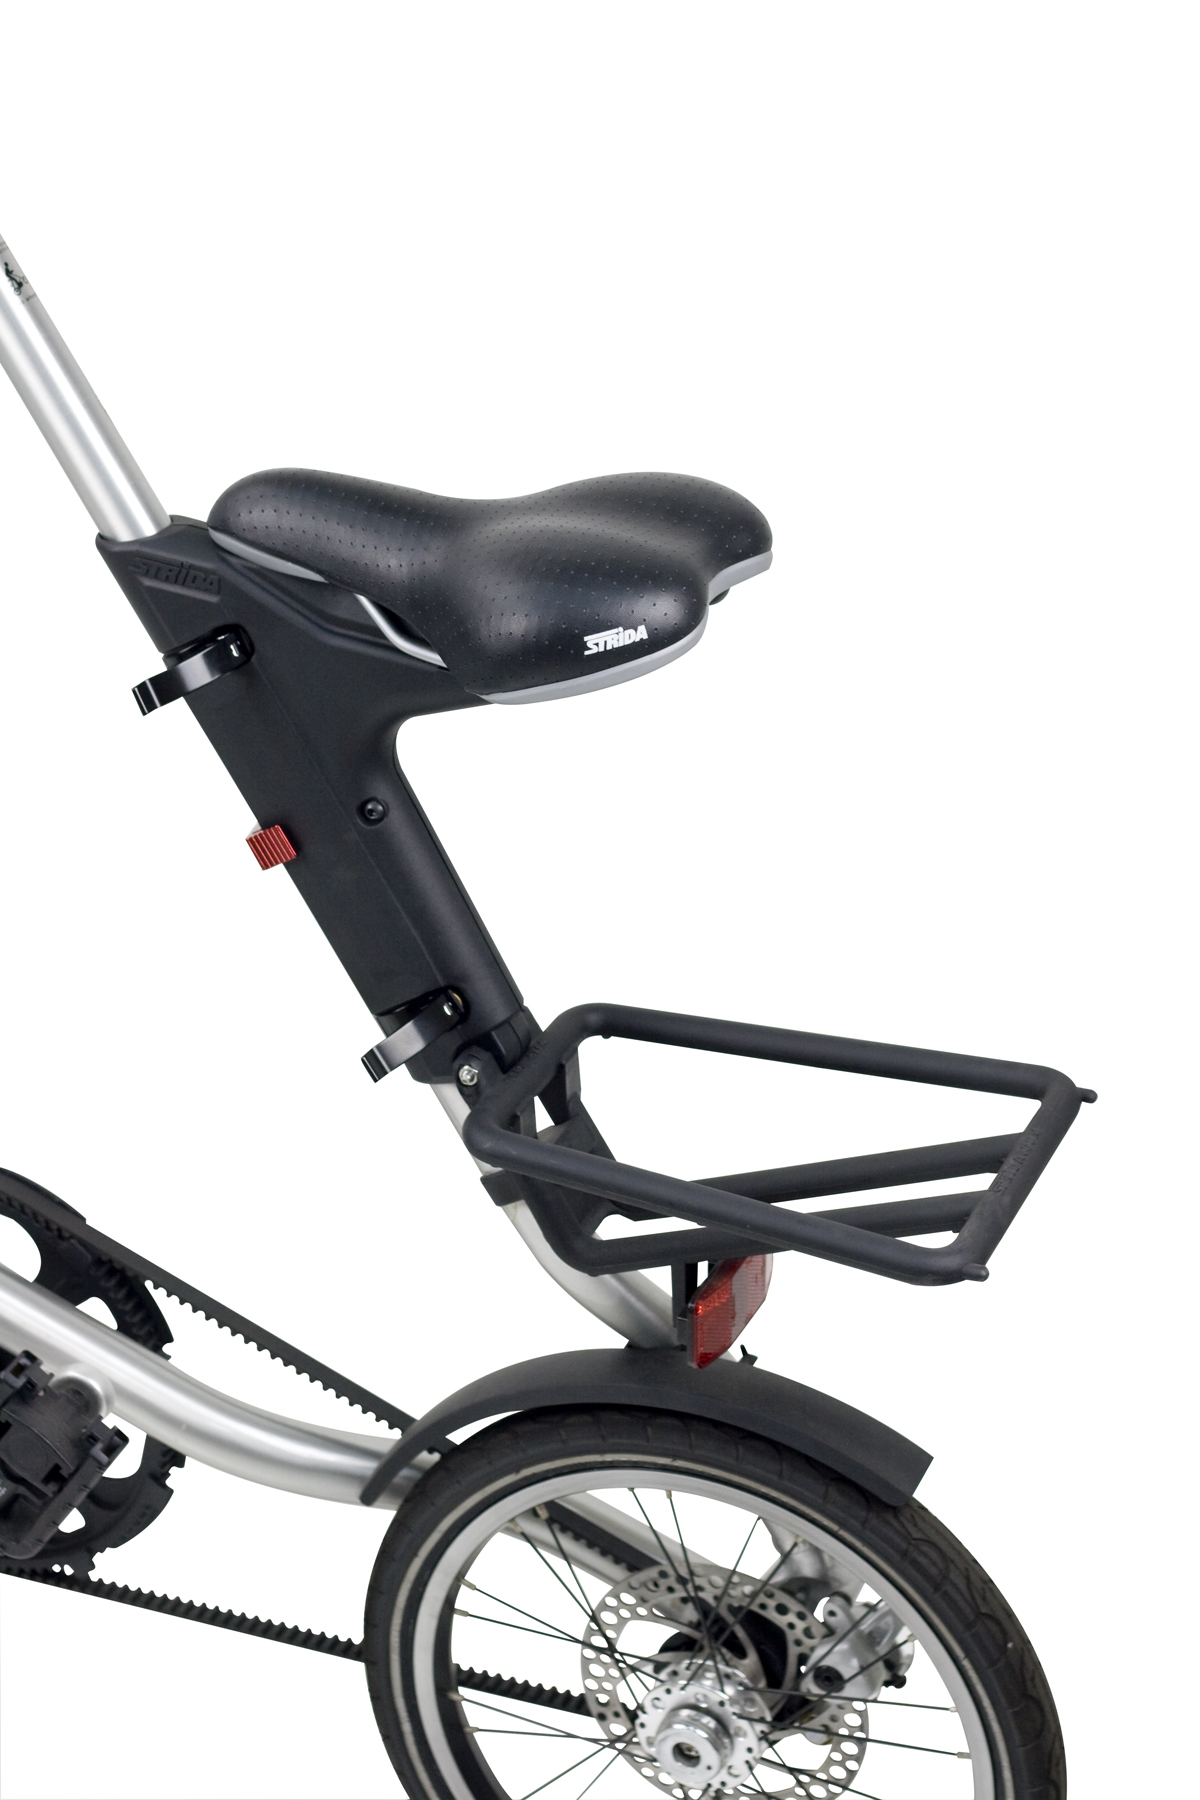 Strida Quick Release Seat molding